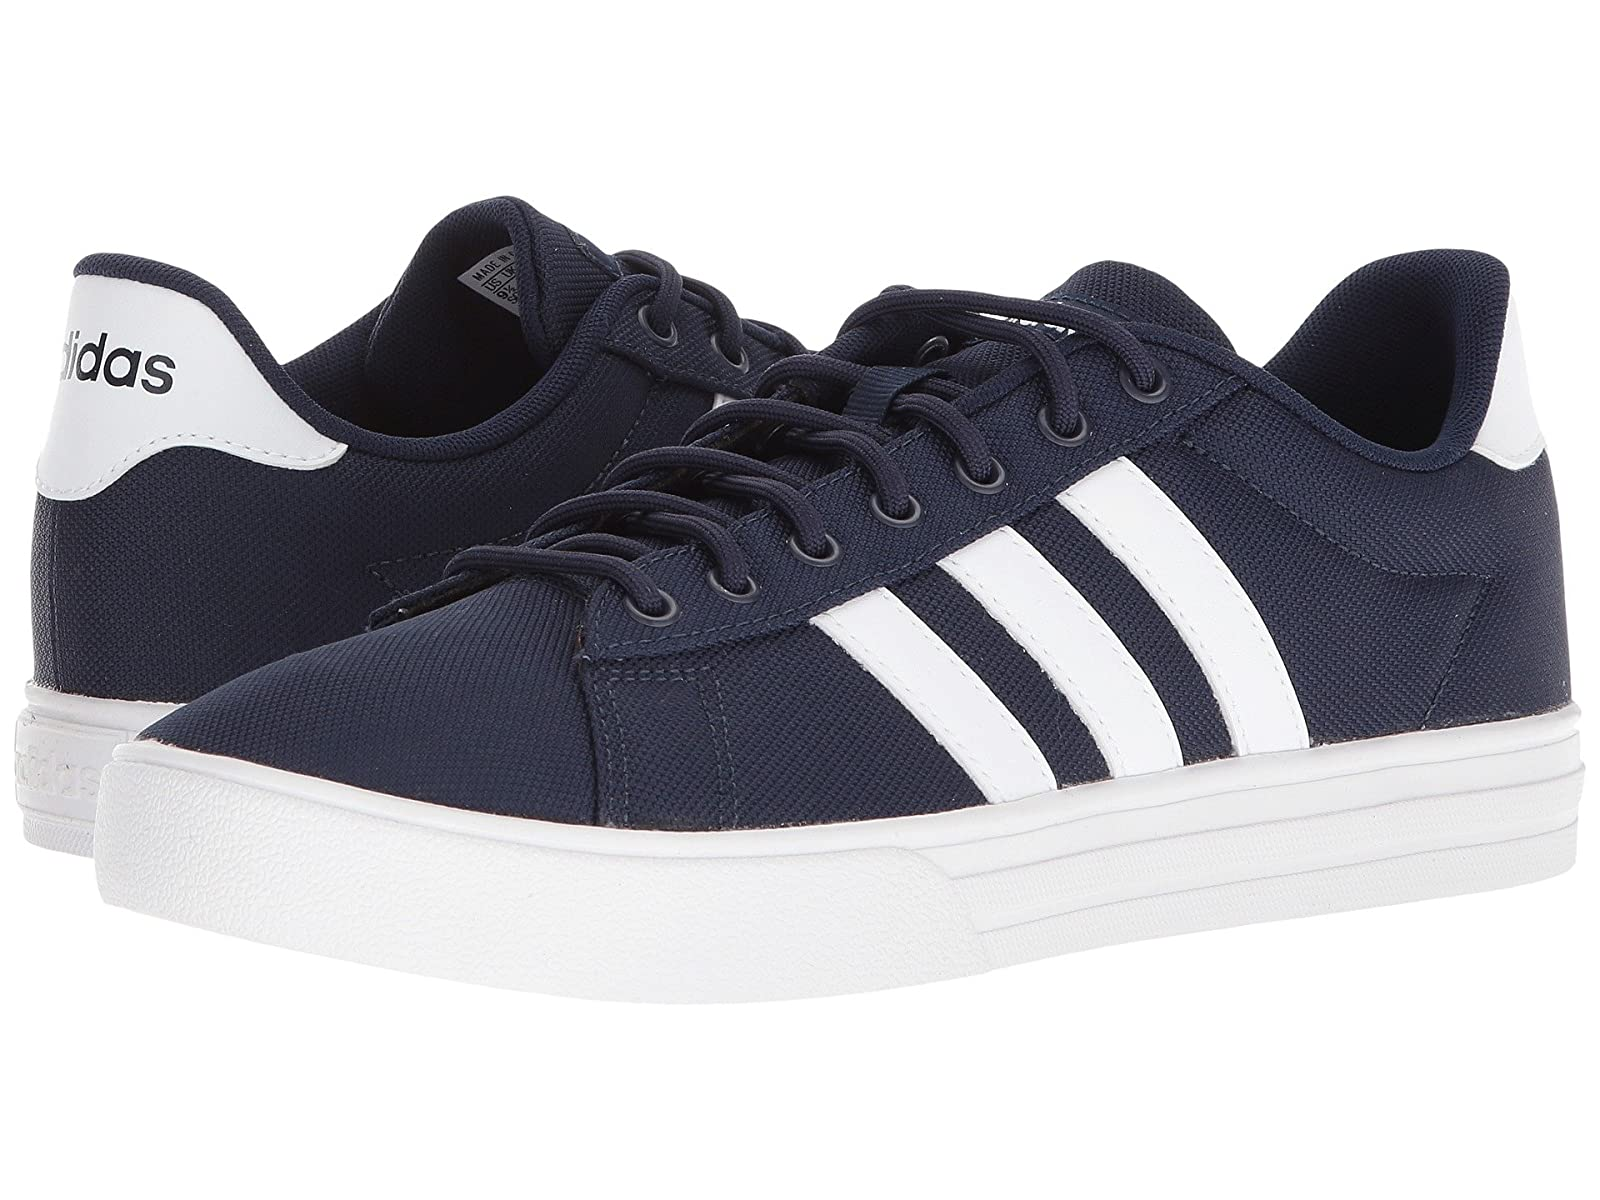 adidas Daily 2.0Stylish and characteristic shoes